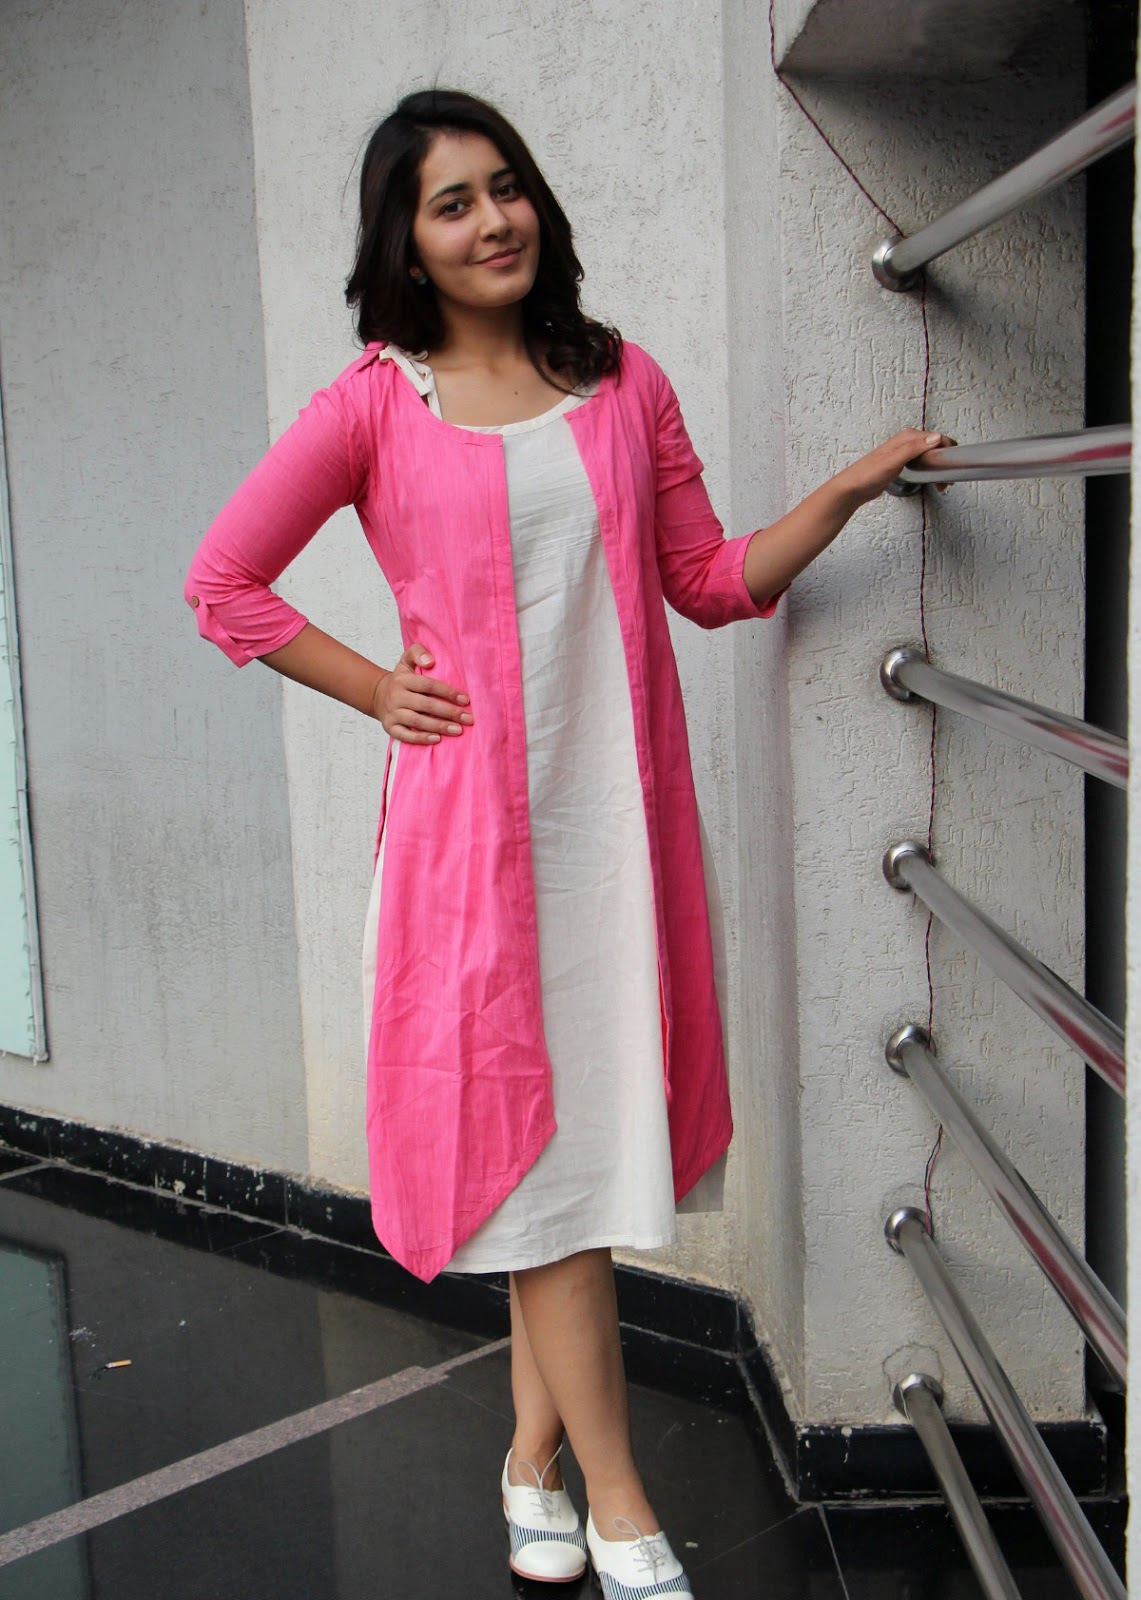 Raashi Khanna Cool Look In Summer Cotton Pink and Cream Outfit